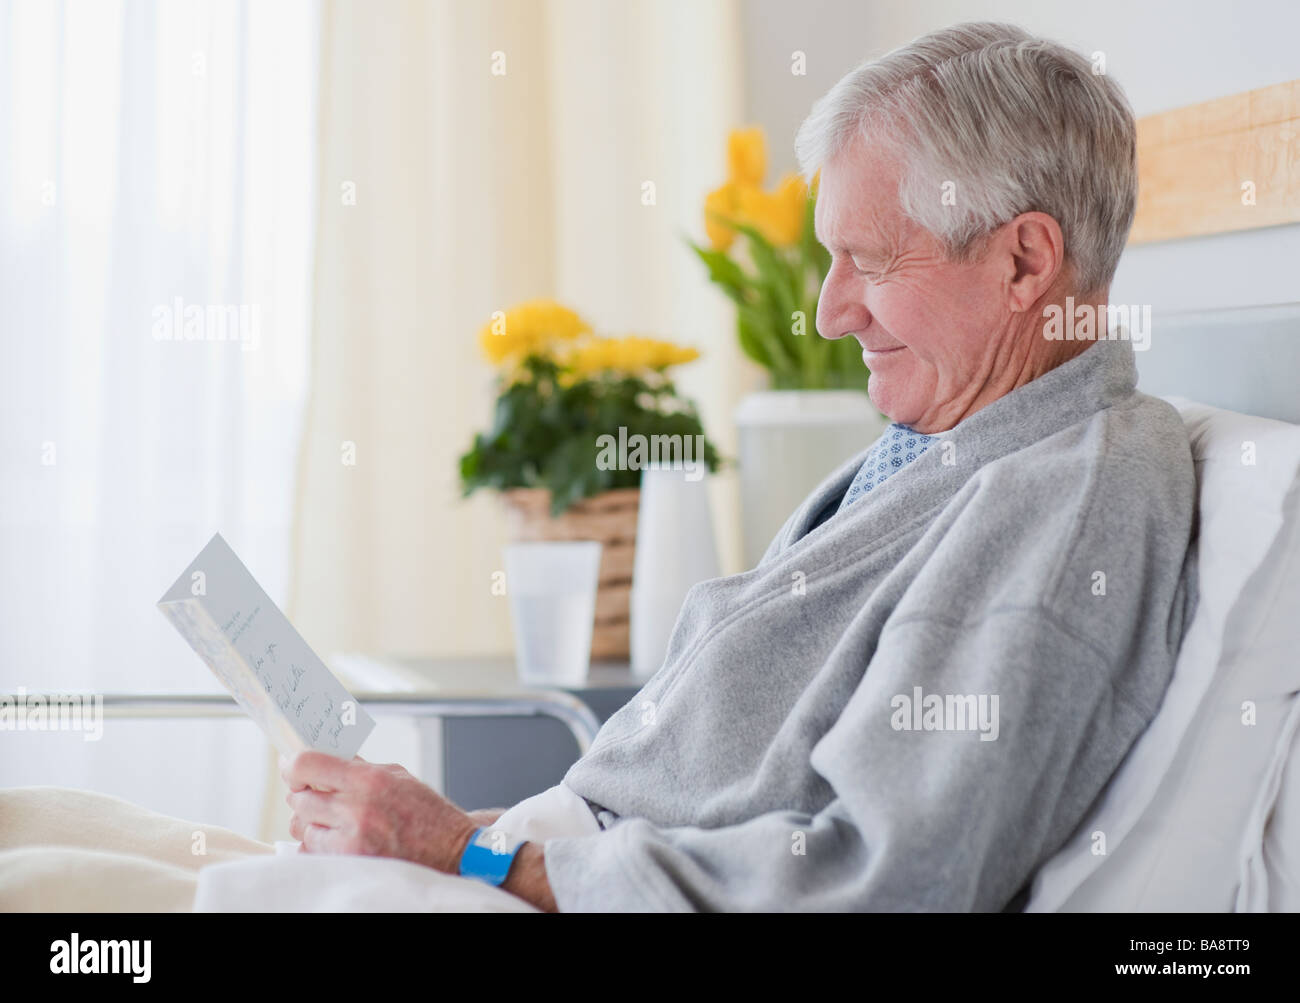 Senior man reading get well card in hospital - Stock Image